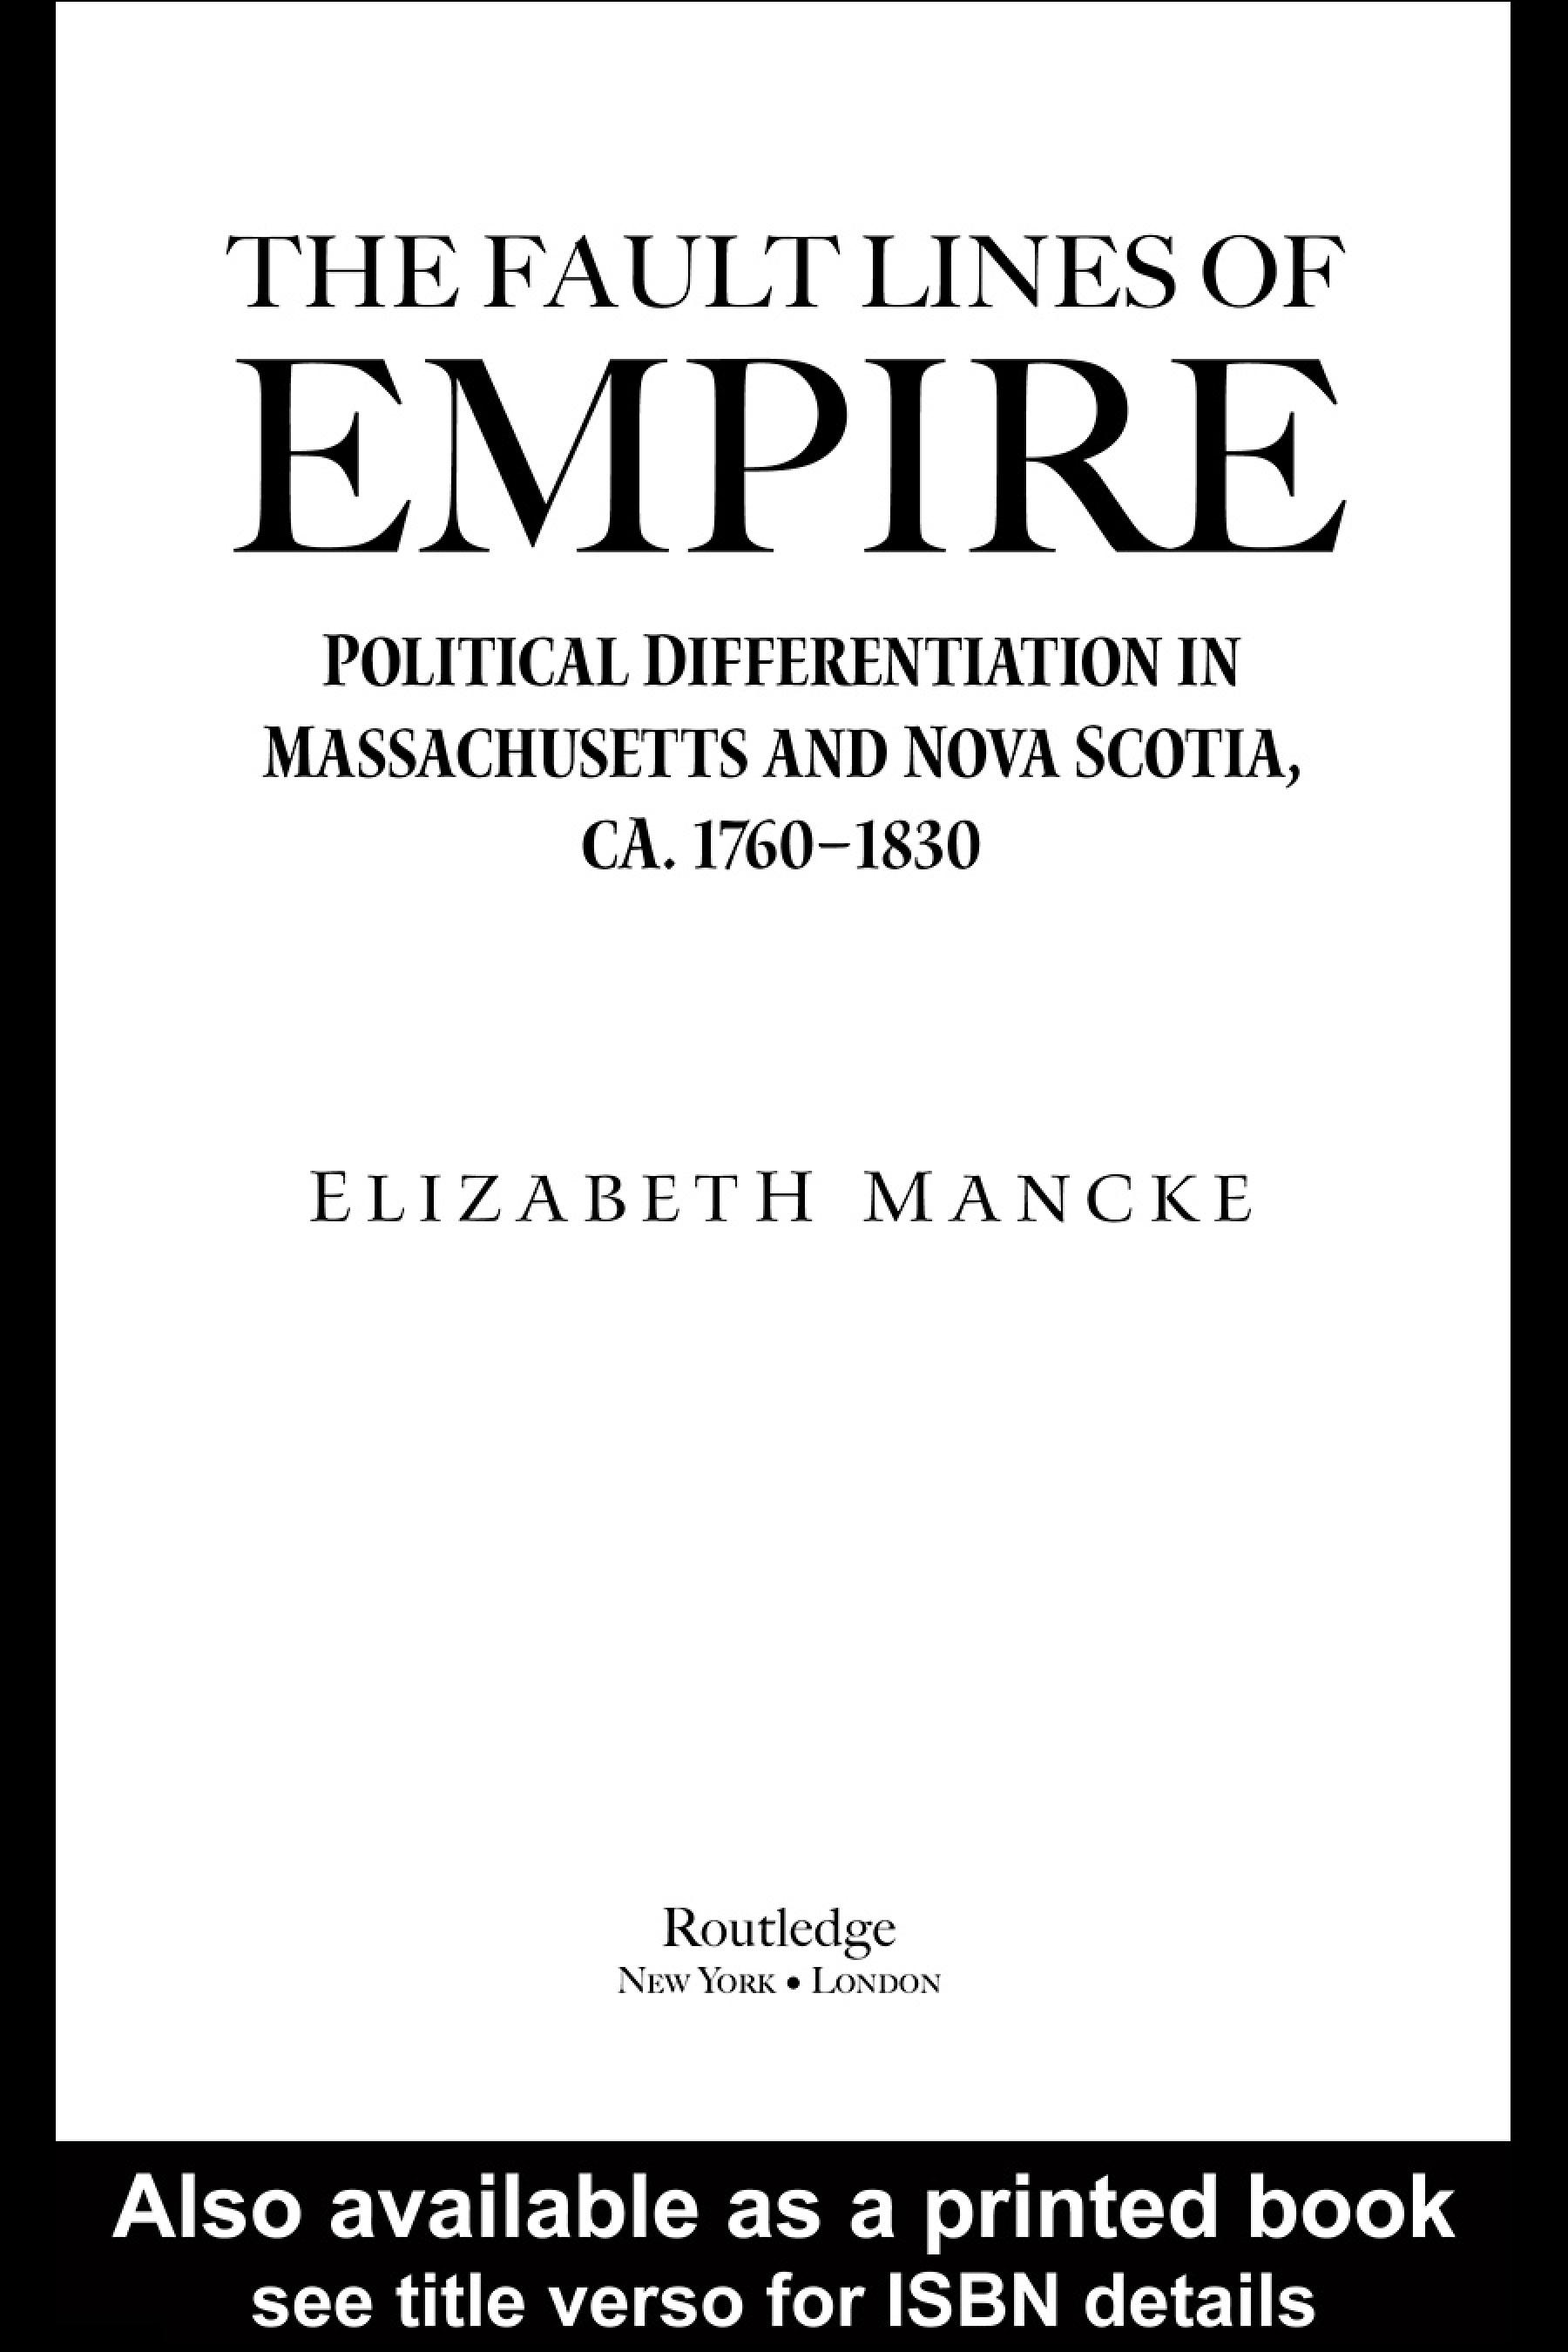 The Fault Lines of Empire: Political Differentiation in Massachusetts and Nova Scotia, 1760-1830 EB9780203997949